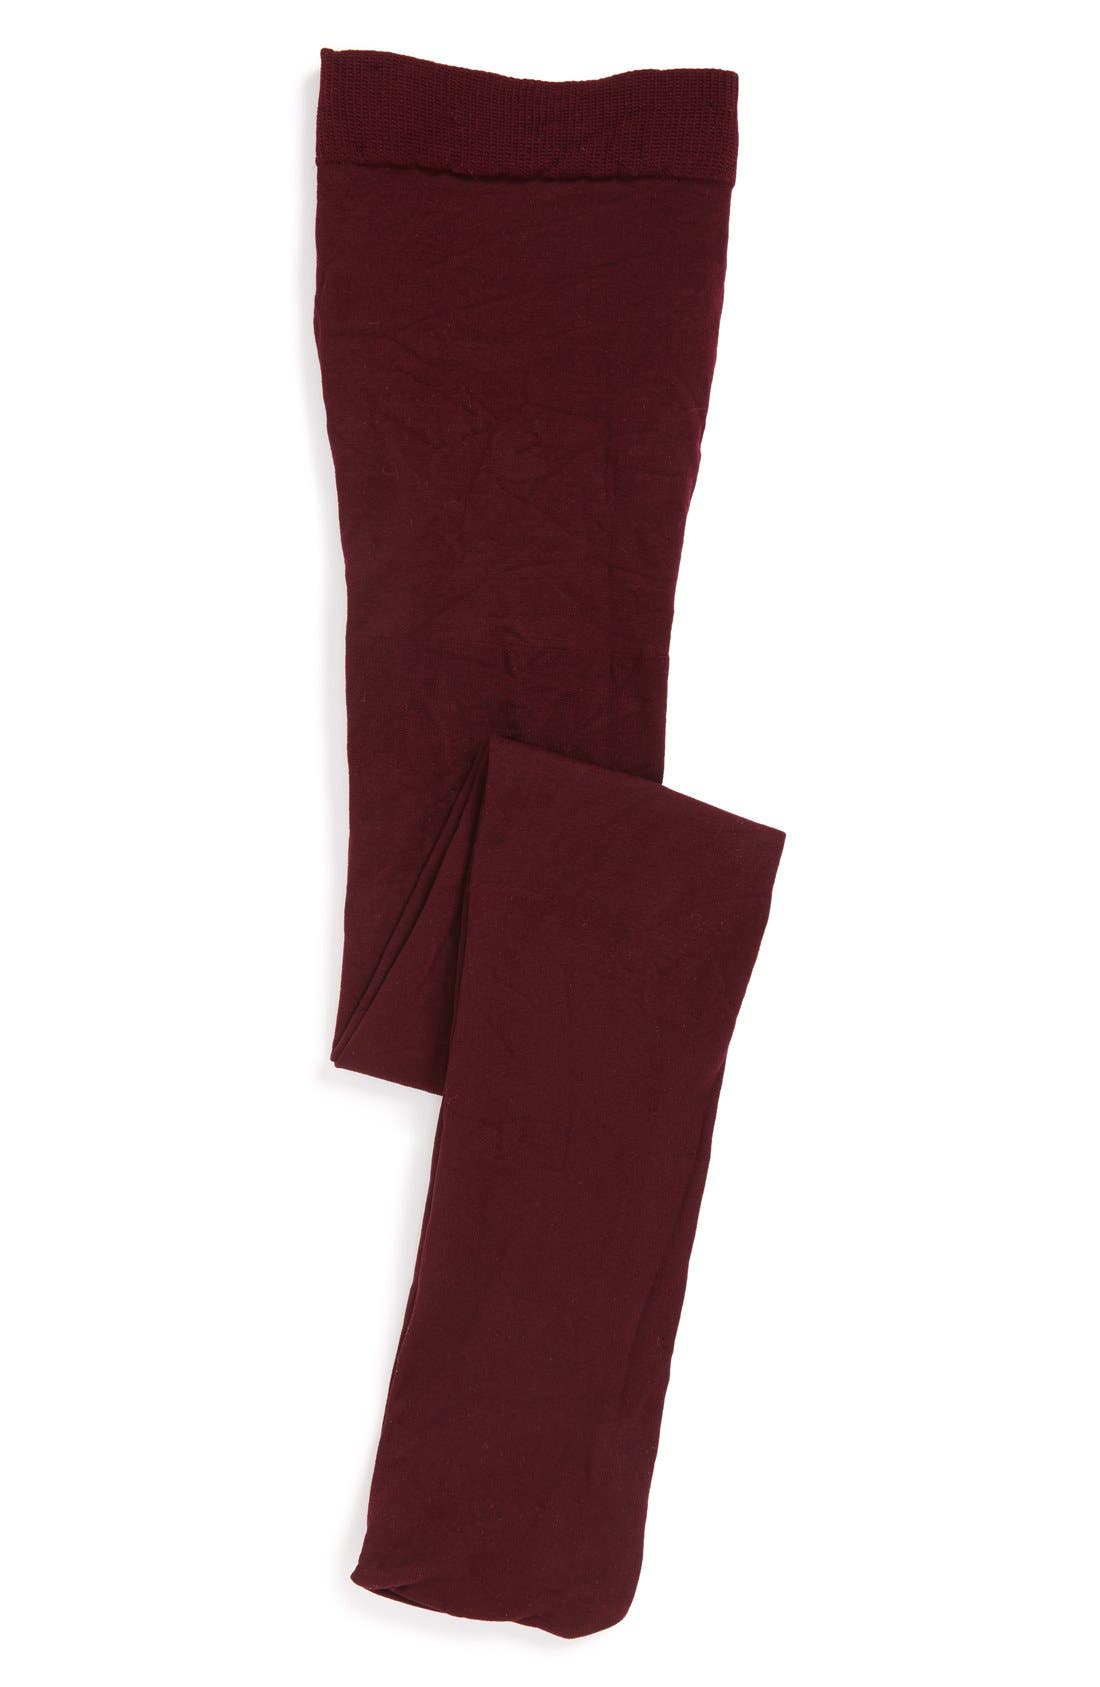 'So Fine' Microfiber Tights,                         Main,                         color, Burgundy Stem